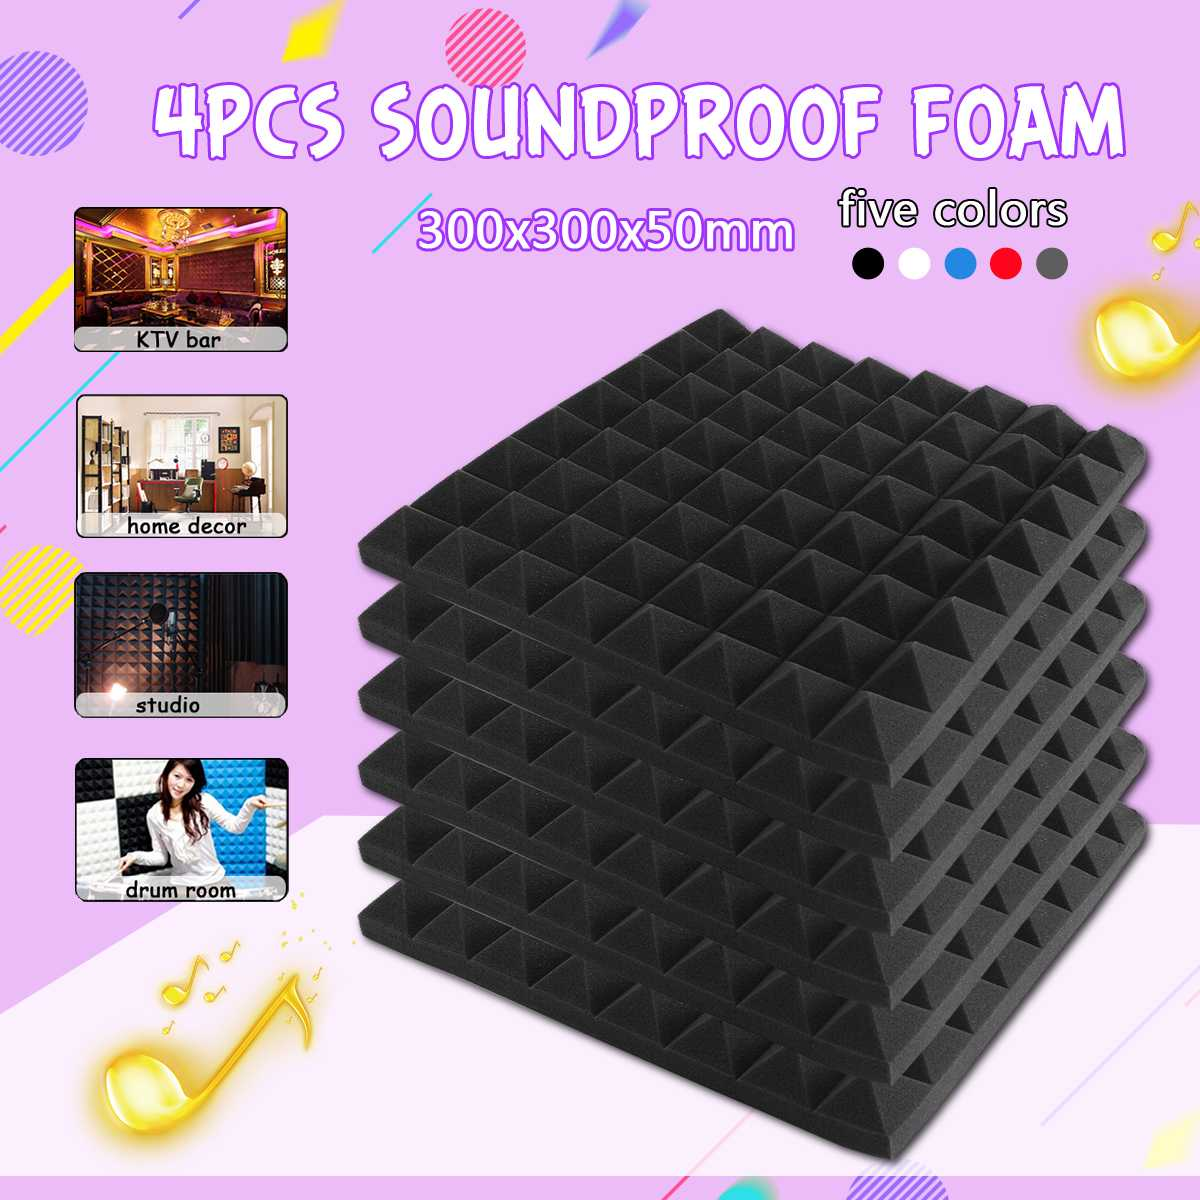 4 PCS 300X300X50mm Studio Acoustic Soundproof Foam Sound Absorption Treatment Panel Tile Protective Polyurethane Sponge4 PCS 300X300X50mm Studio Acoustic Soundproof Foam Sound Absorption Treatment Panel Tile Protective Polyurethane Sponge